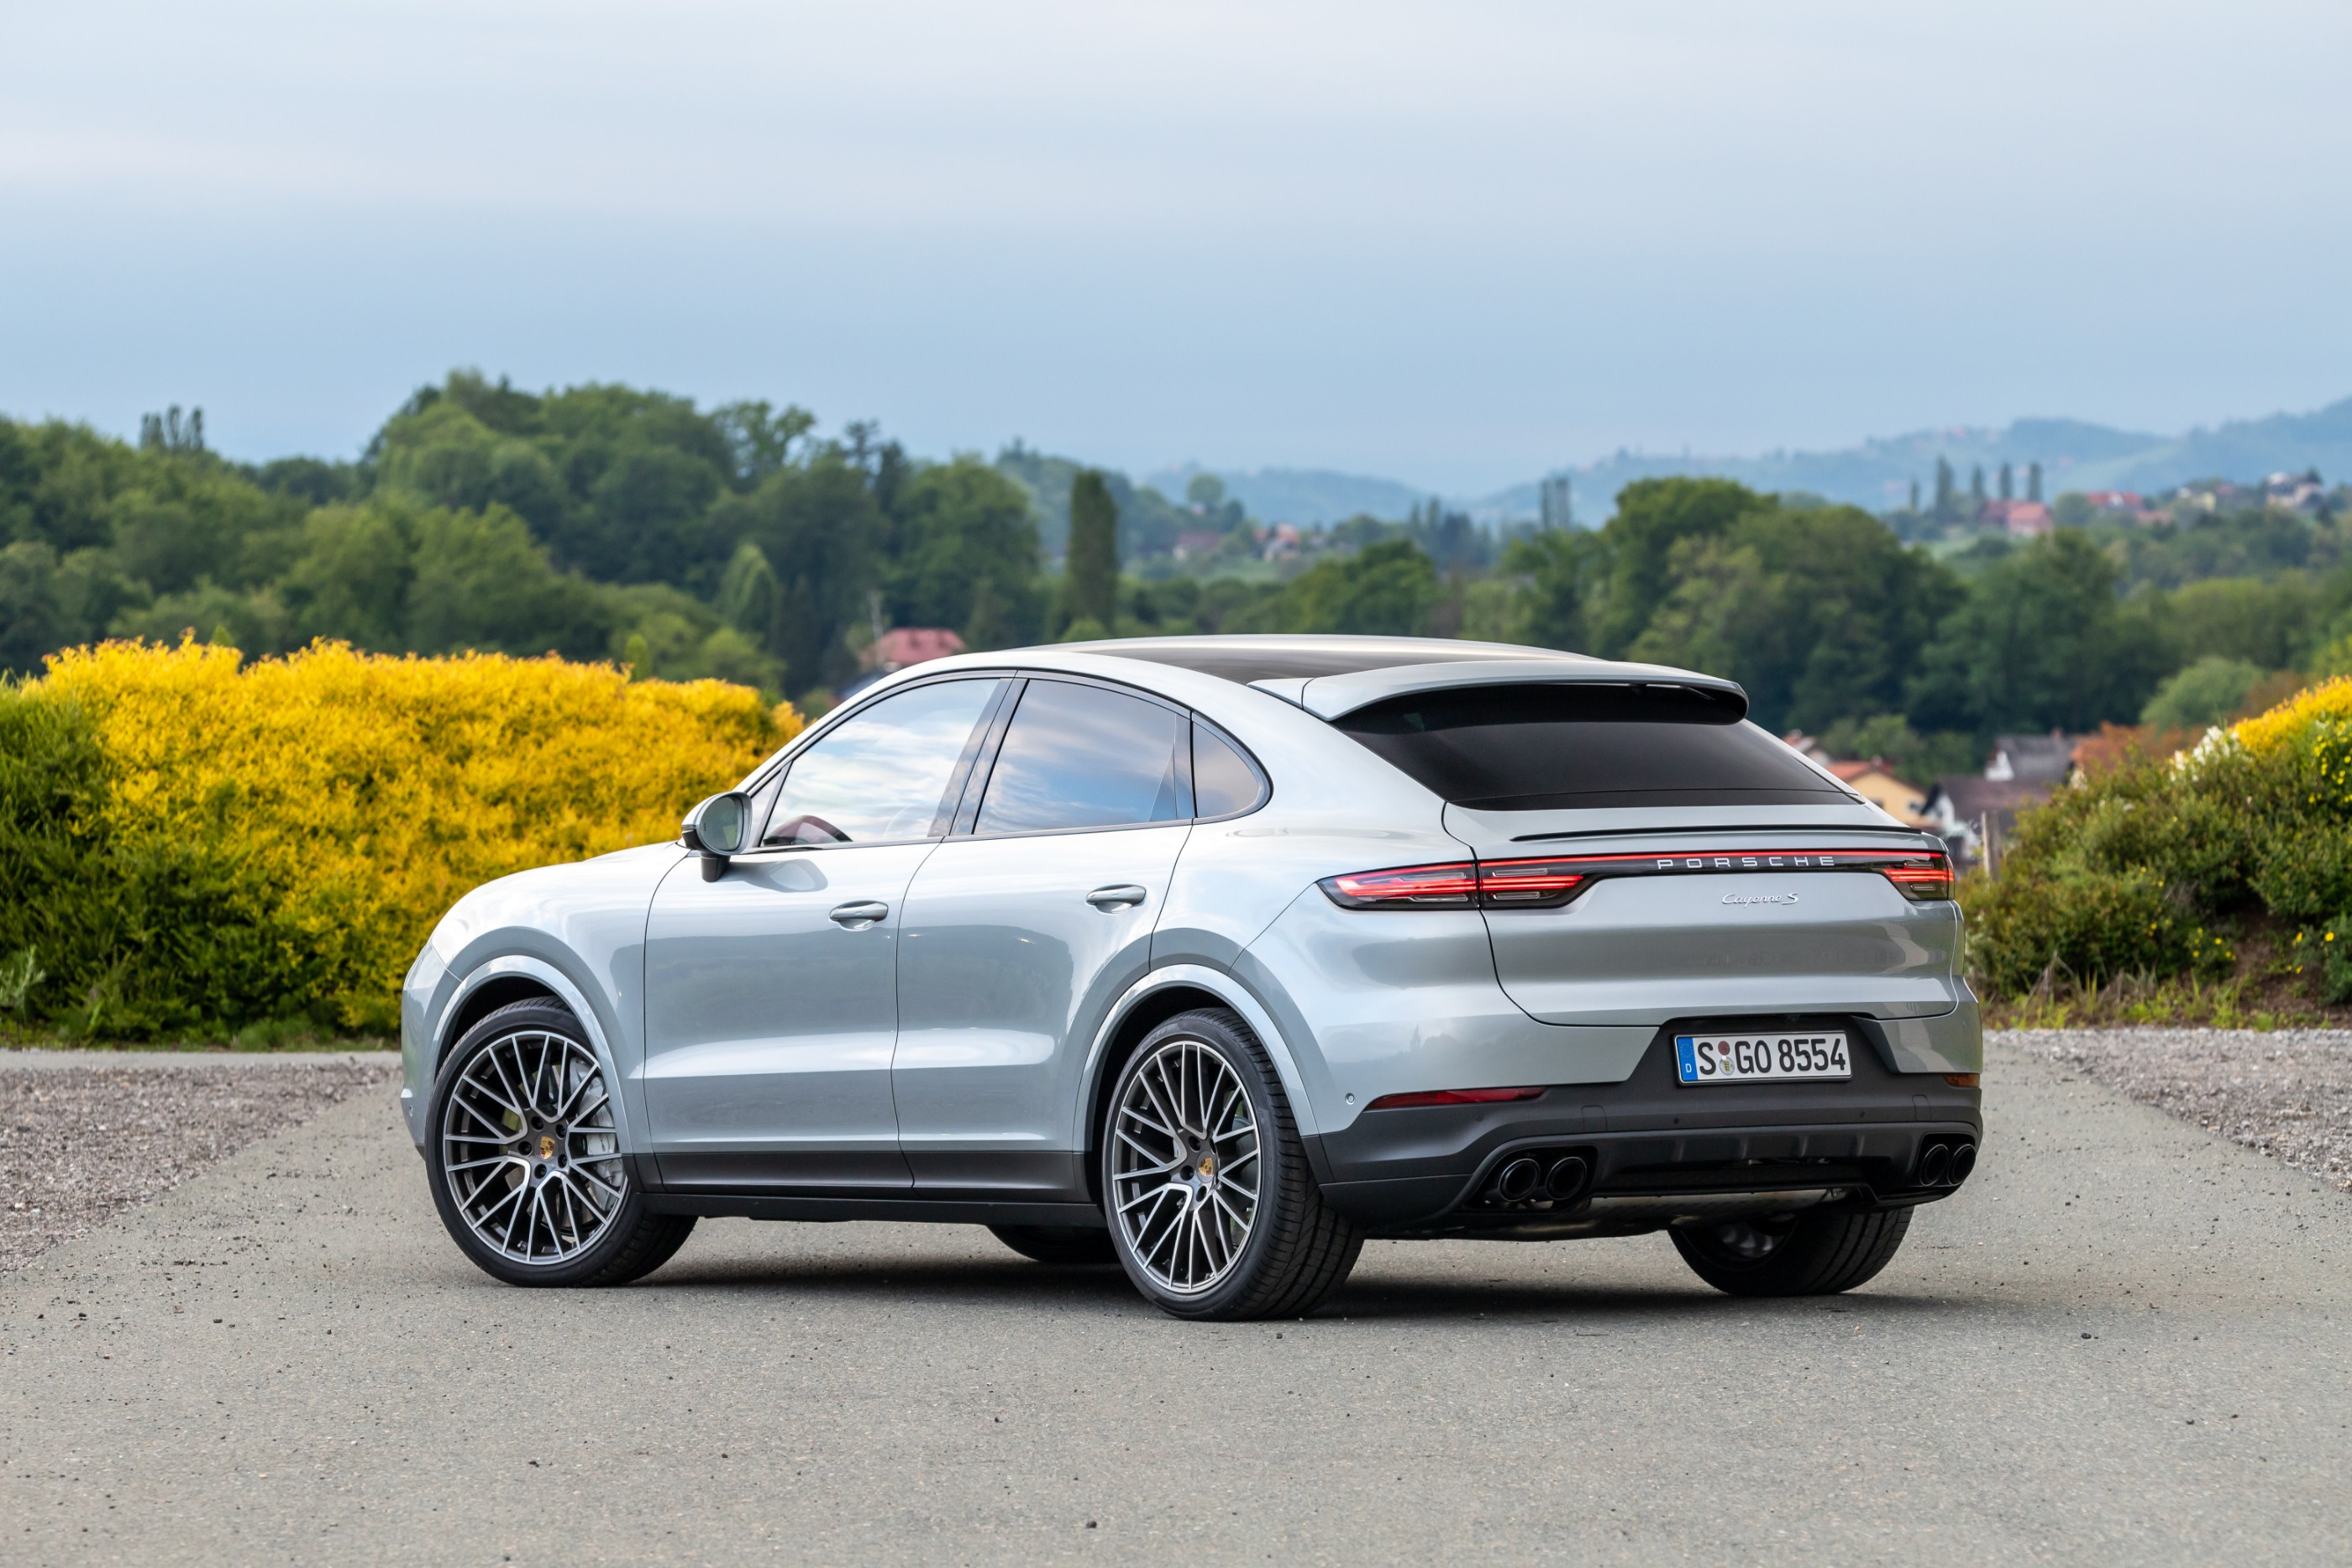 2020 Porsche Cayenne Coupe Price, Redesign >> 2020 Porsche Cayenne Coupe 2020 Audi Q5 2020 Bmw 5 Series Car